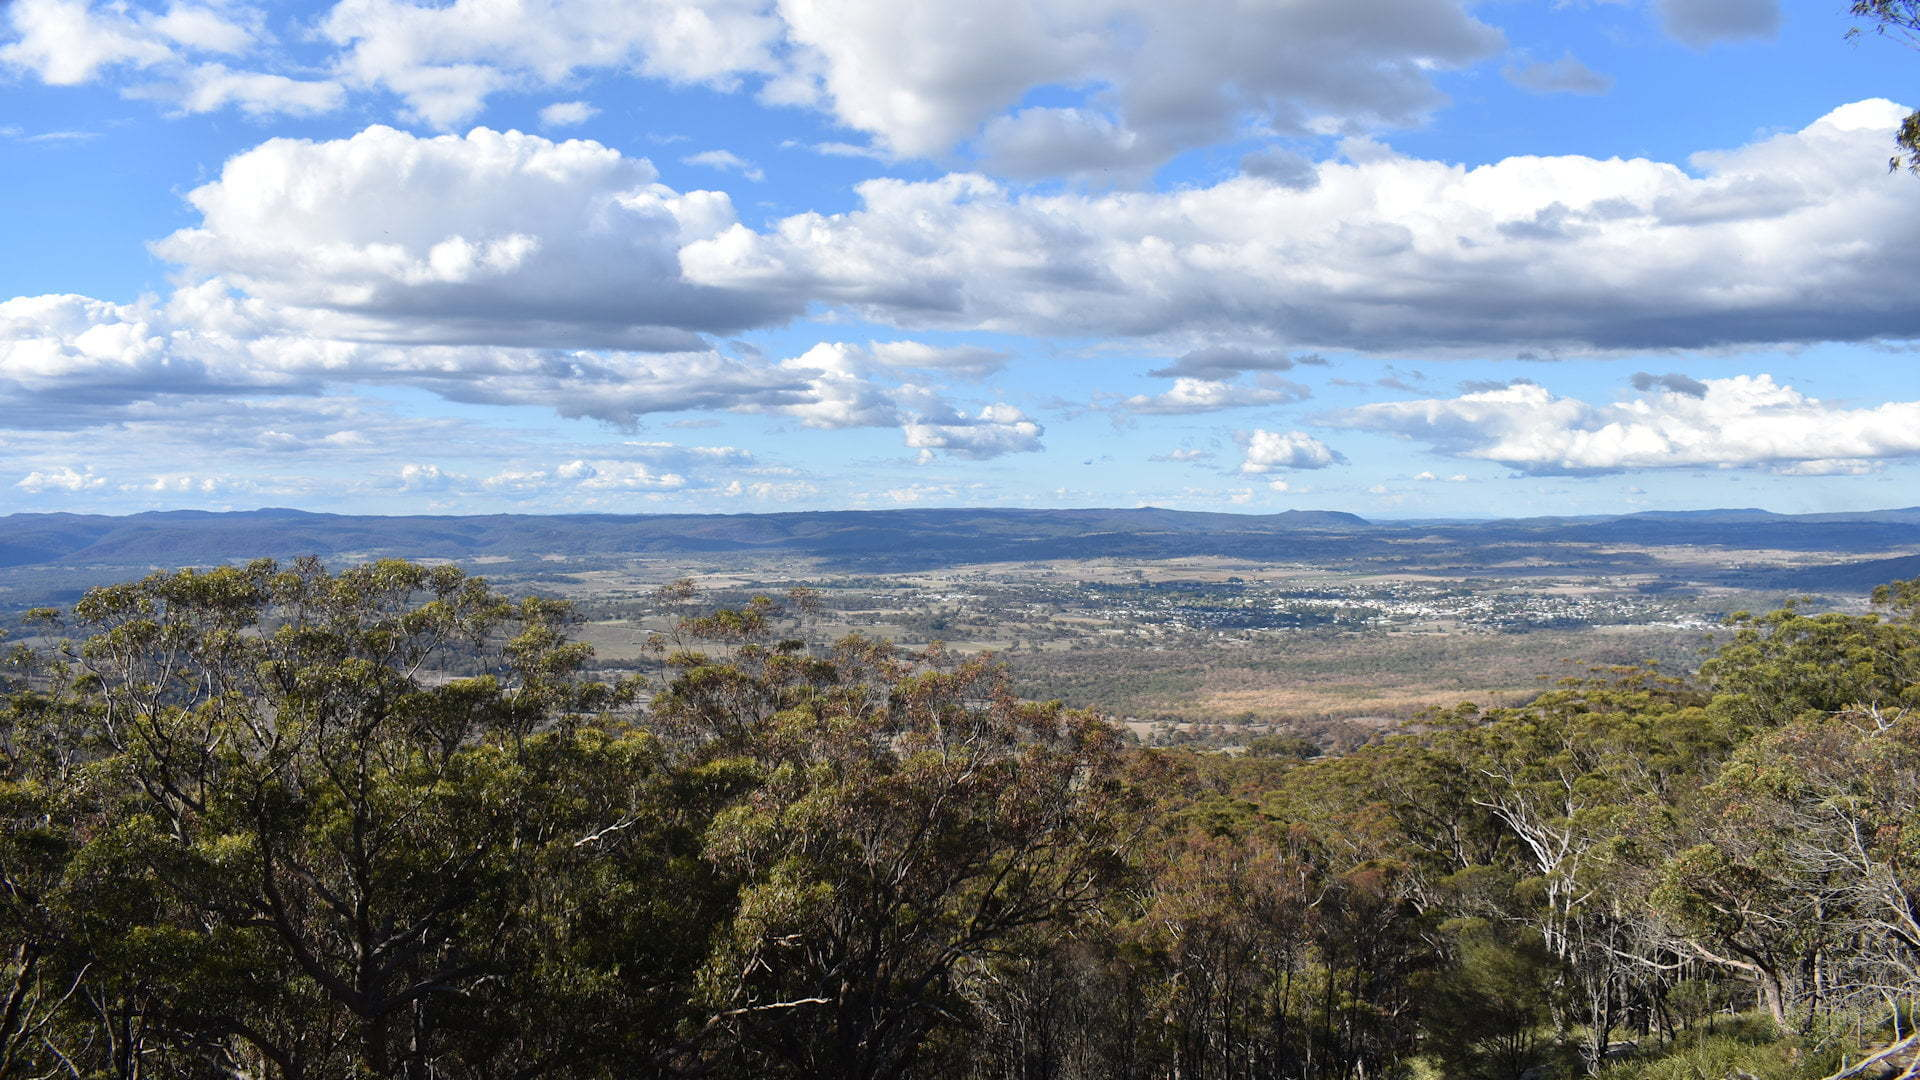 View over Tenterfield in the distance, taken from Mt Mackenzie Lookout